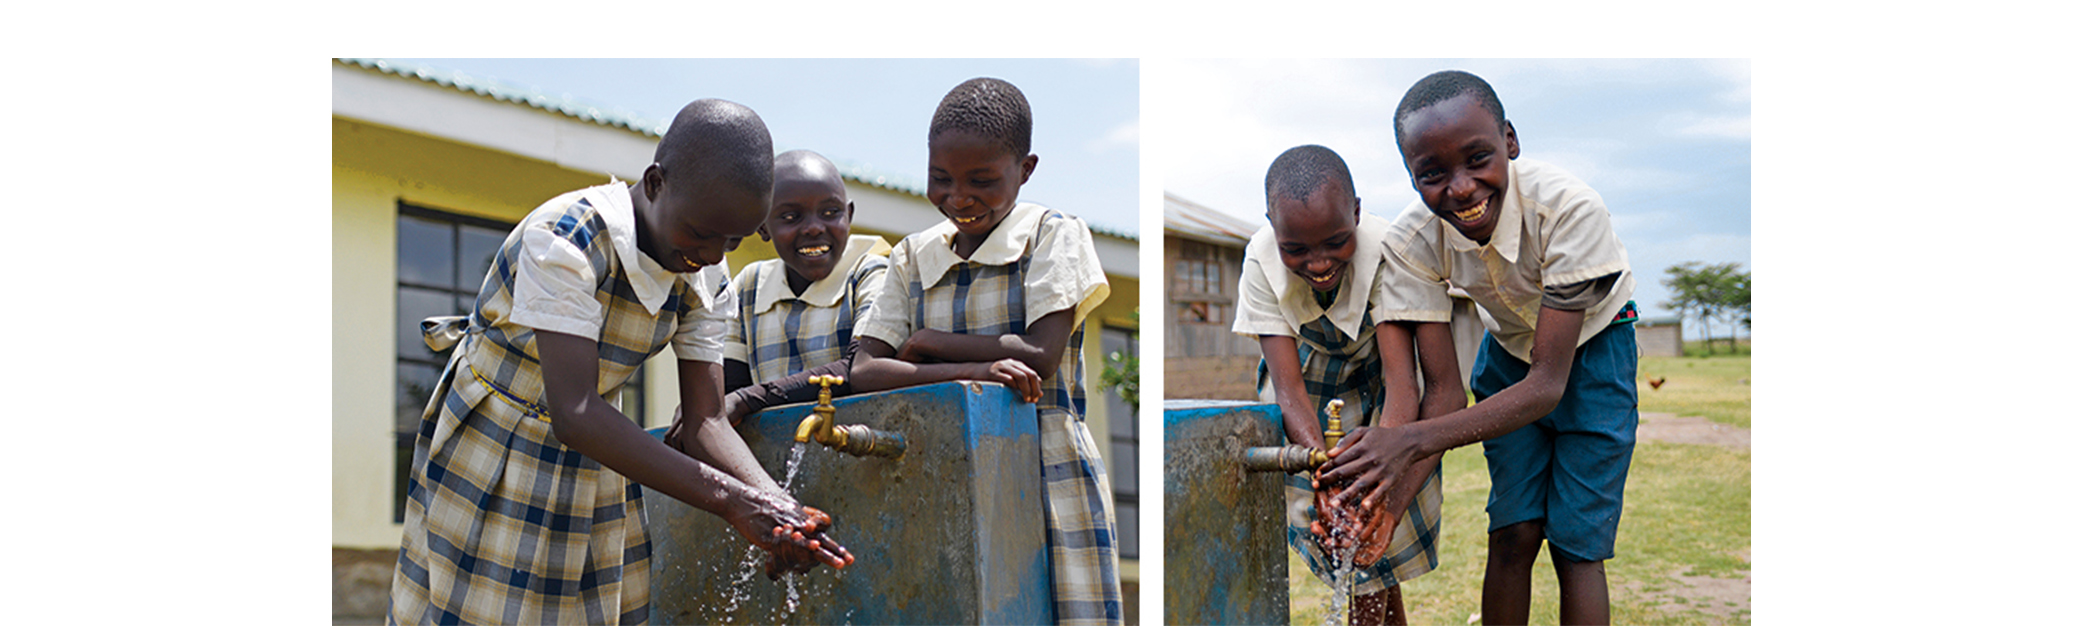 Kids Water Kenya